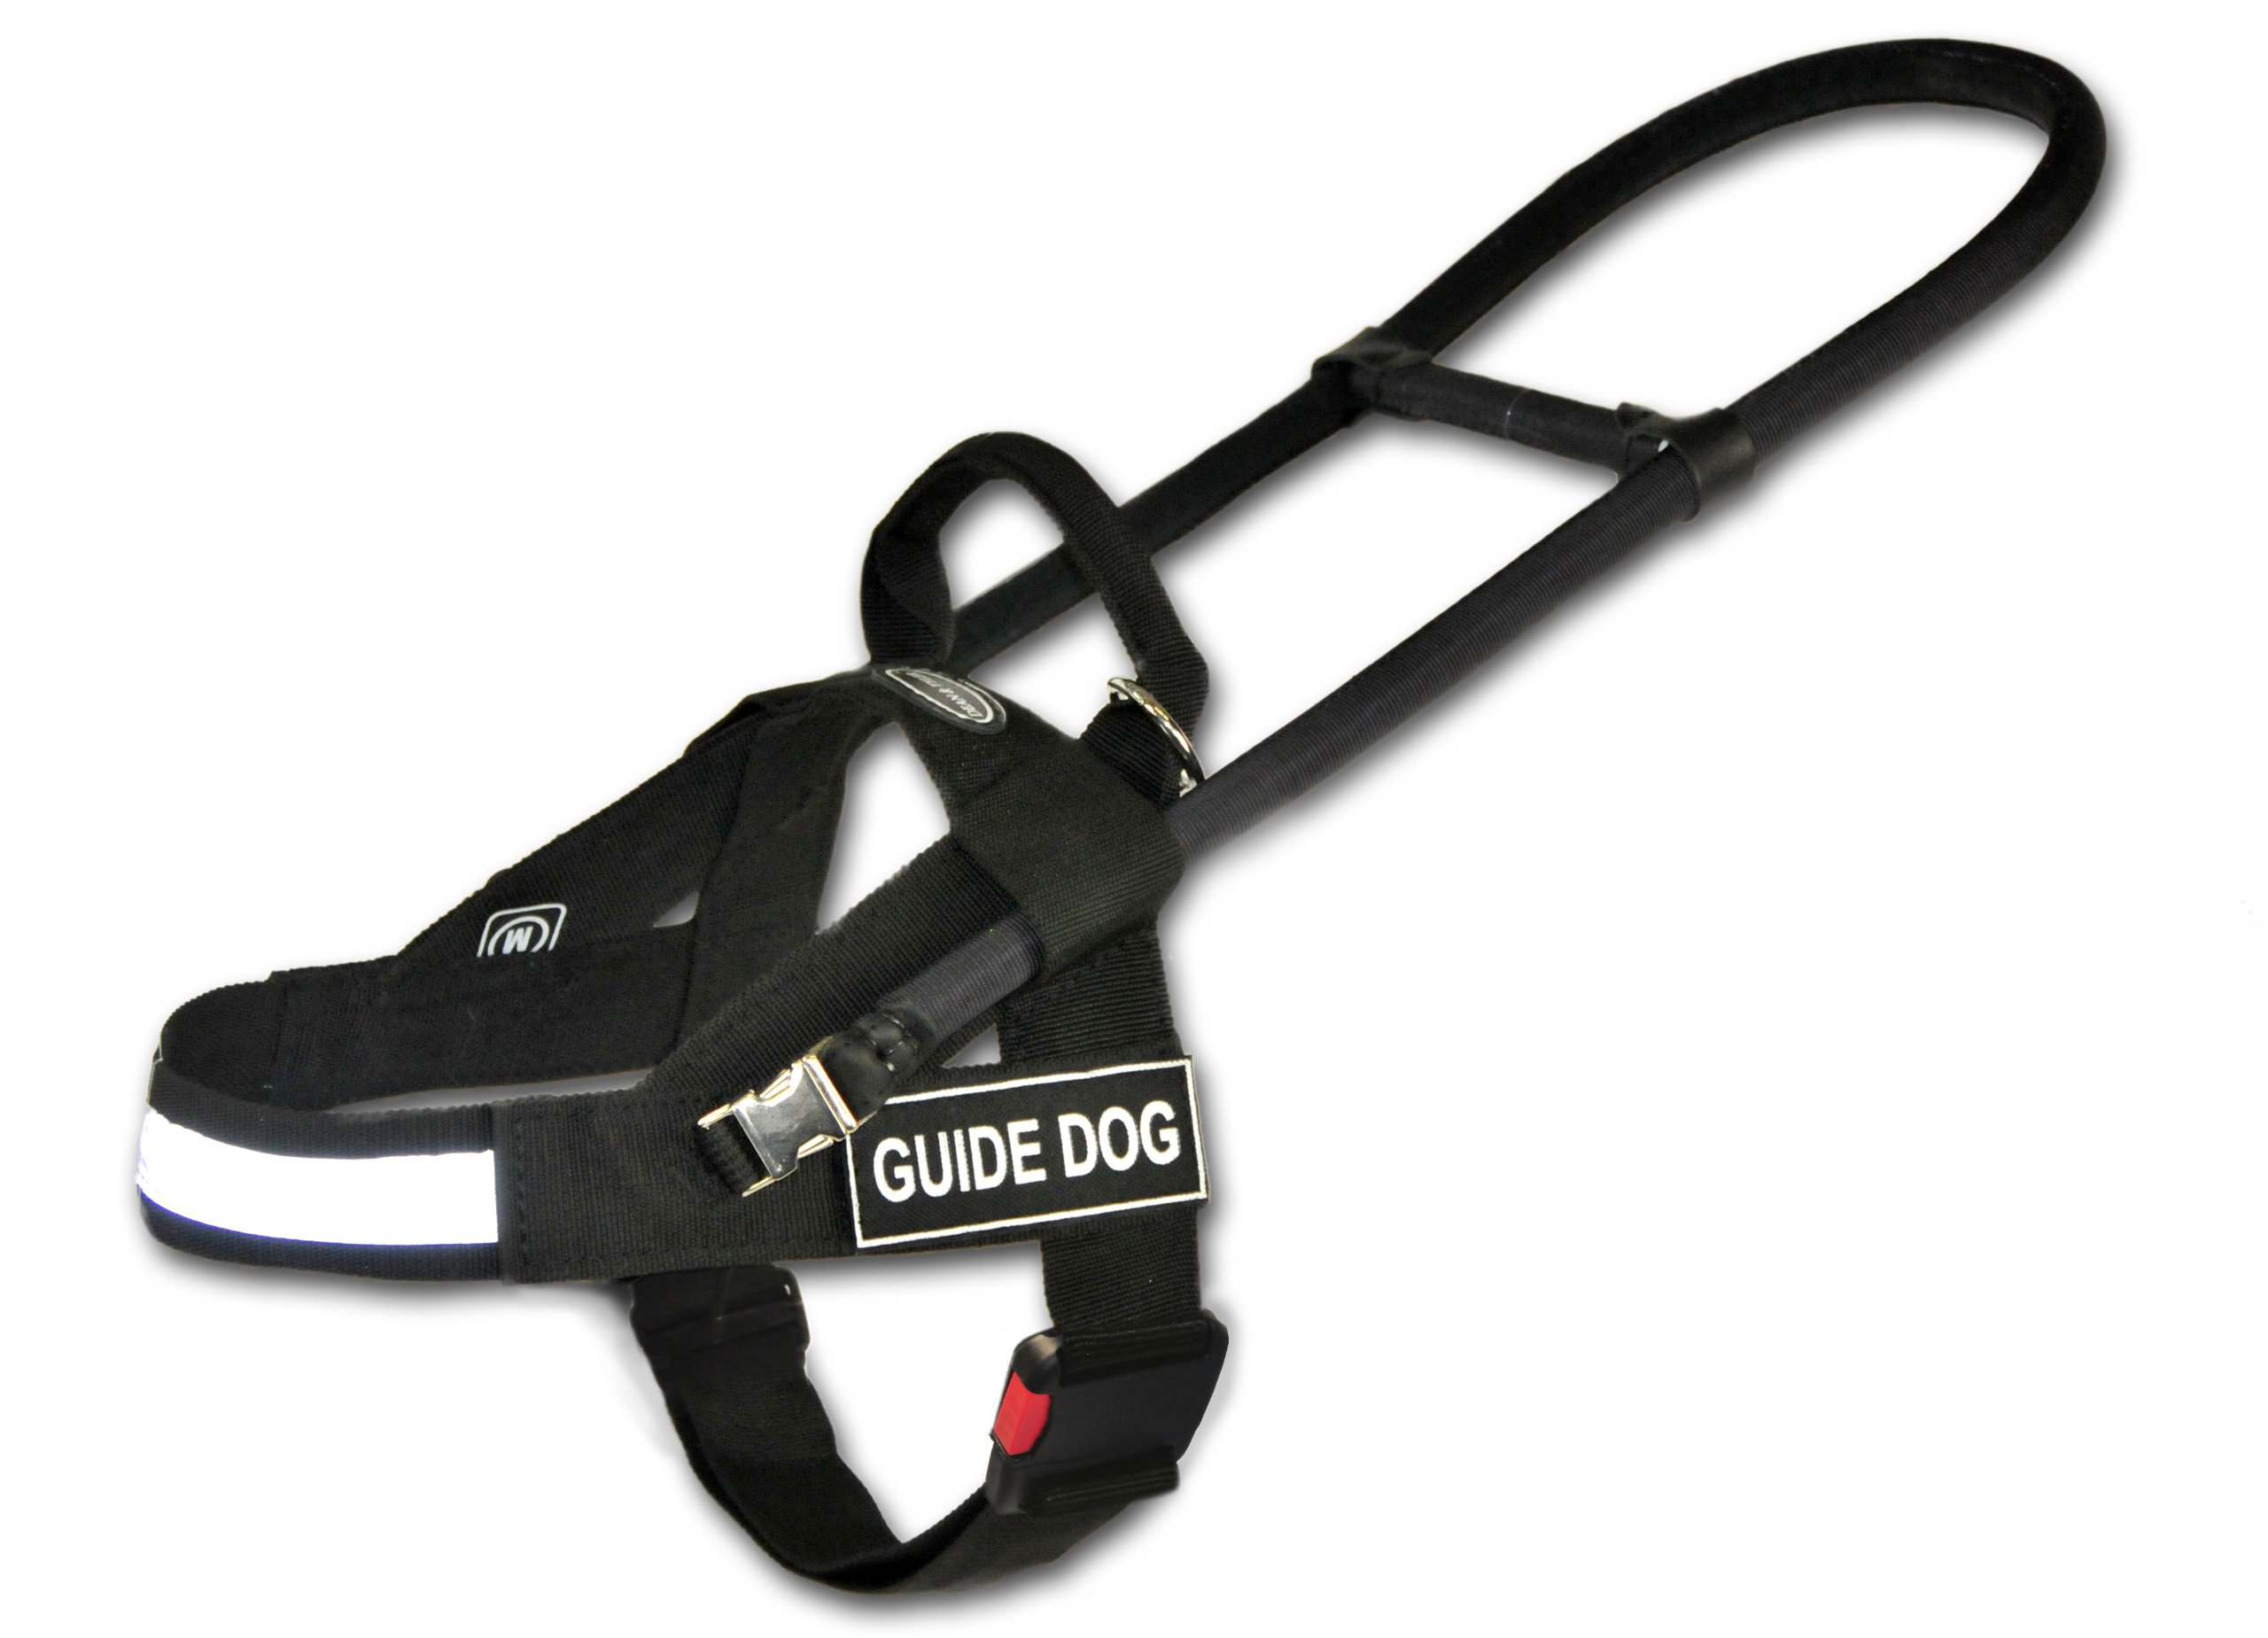 Dean and Tyler Guide Light Nickel Hardware Nylon Dog Harness, Black/Reflective, Medium - Fits Girth: 29-Inch to 39-Inch, Chest Size: 22-Inch Max